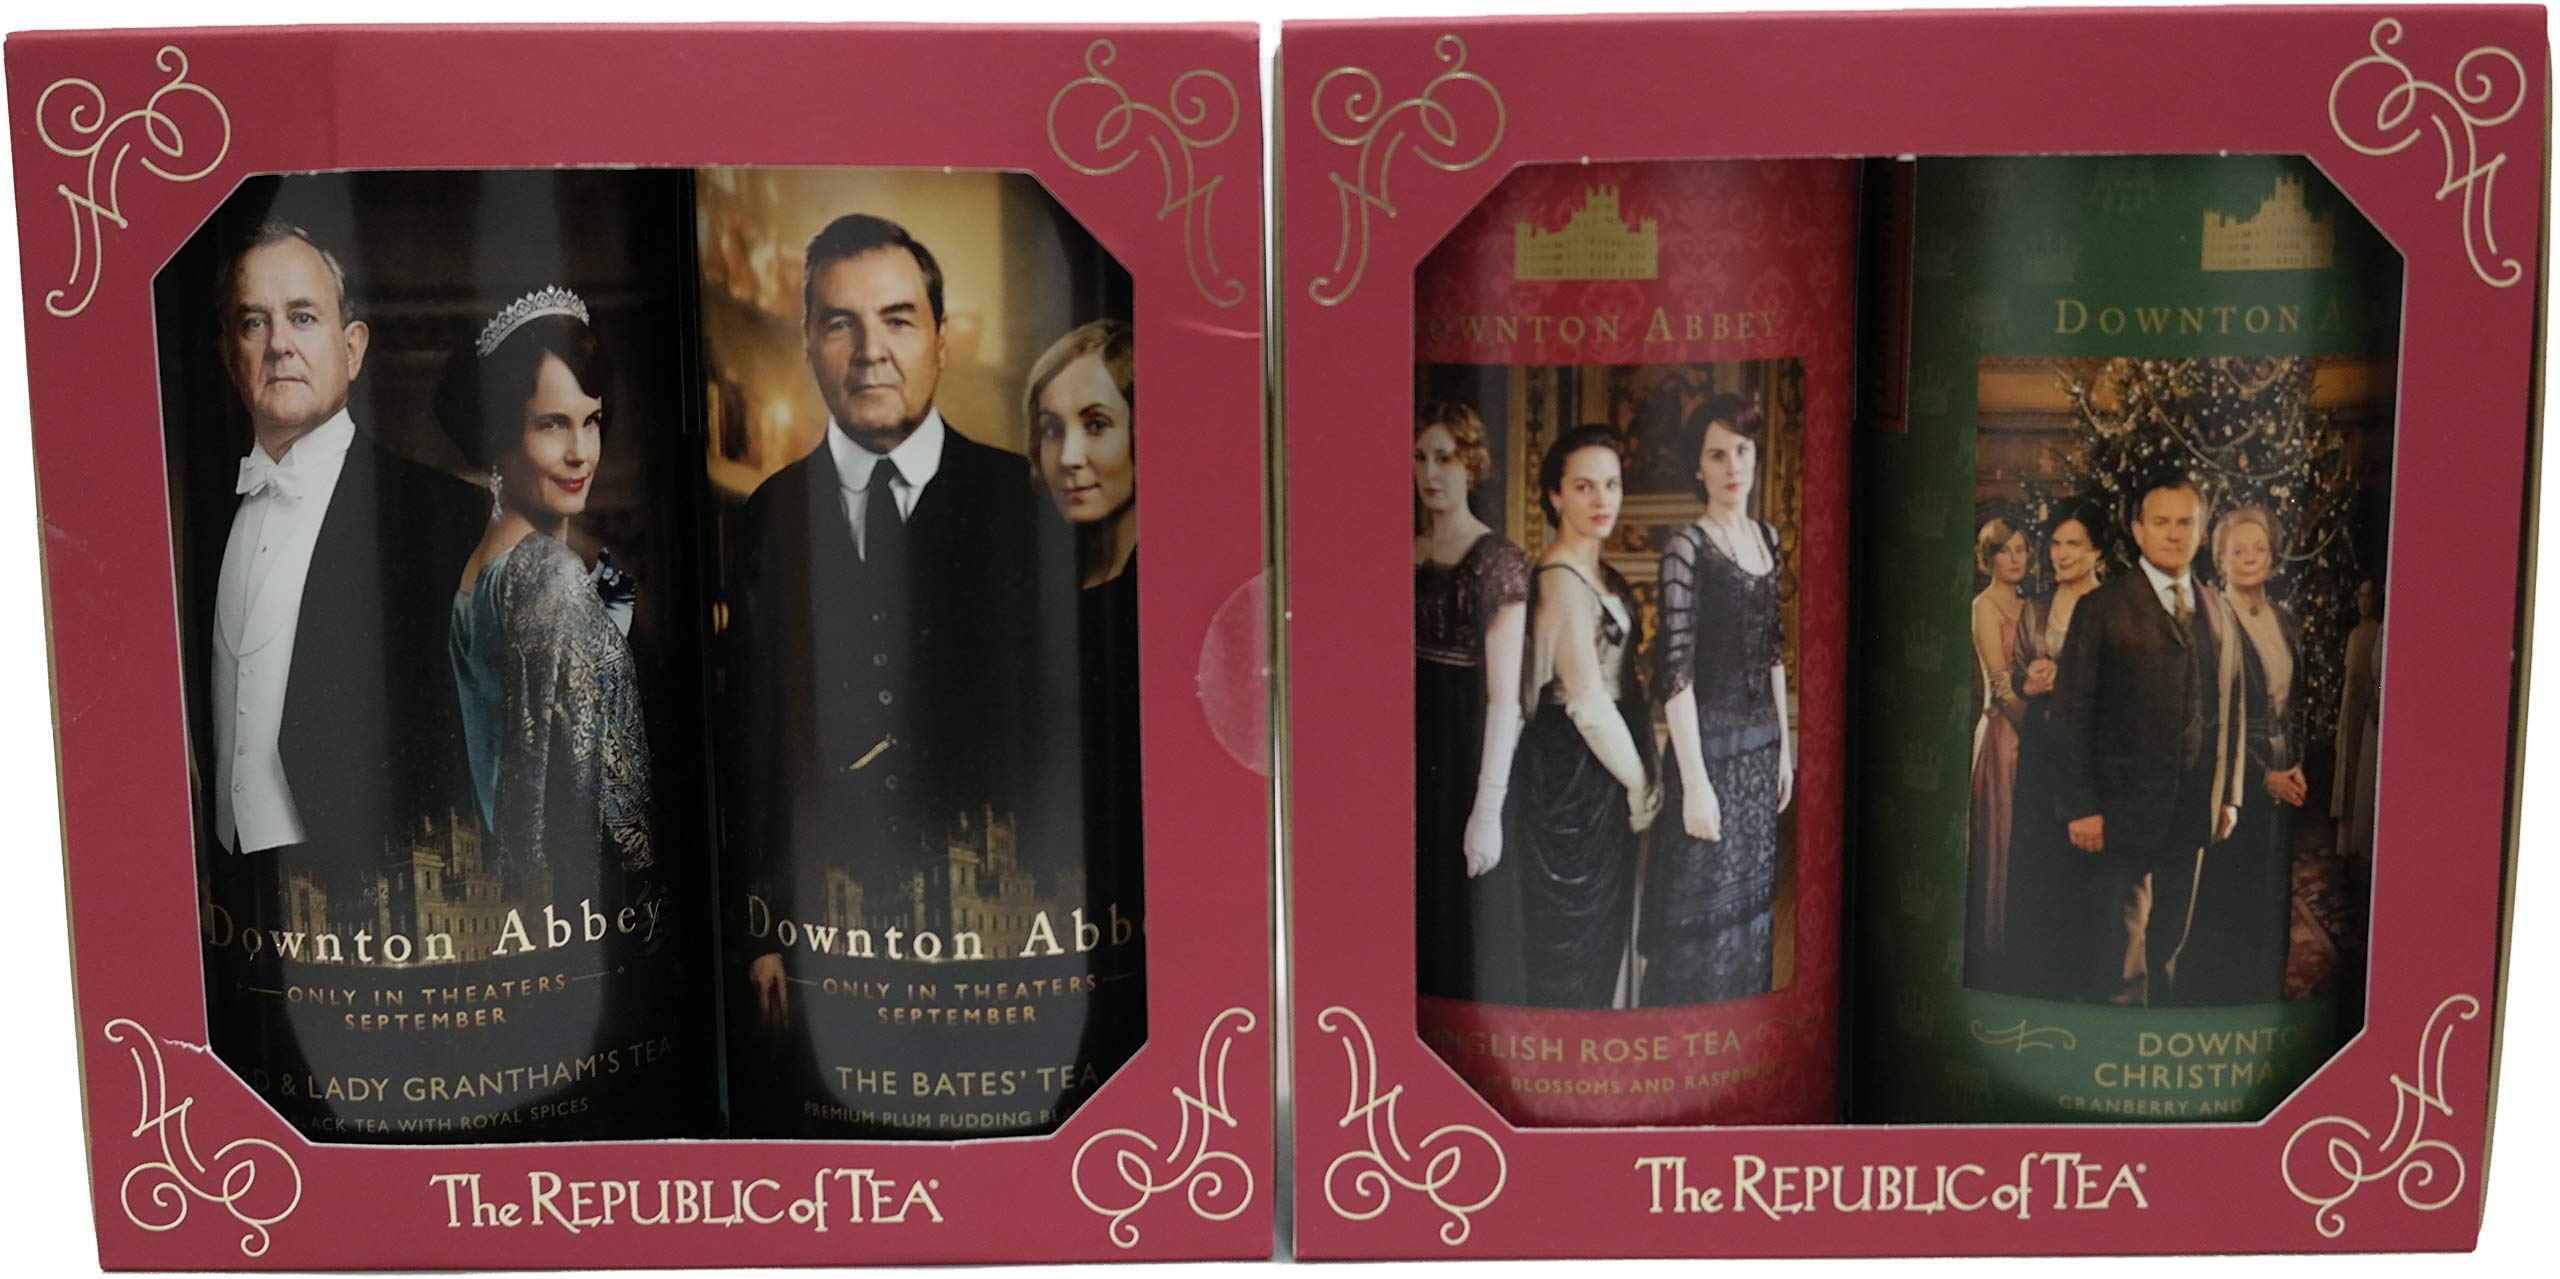 Downton AbbeyTea Holiday & Movie Collector's Set (Variety Pack of 4) by Republic Tea